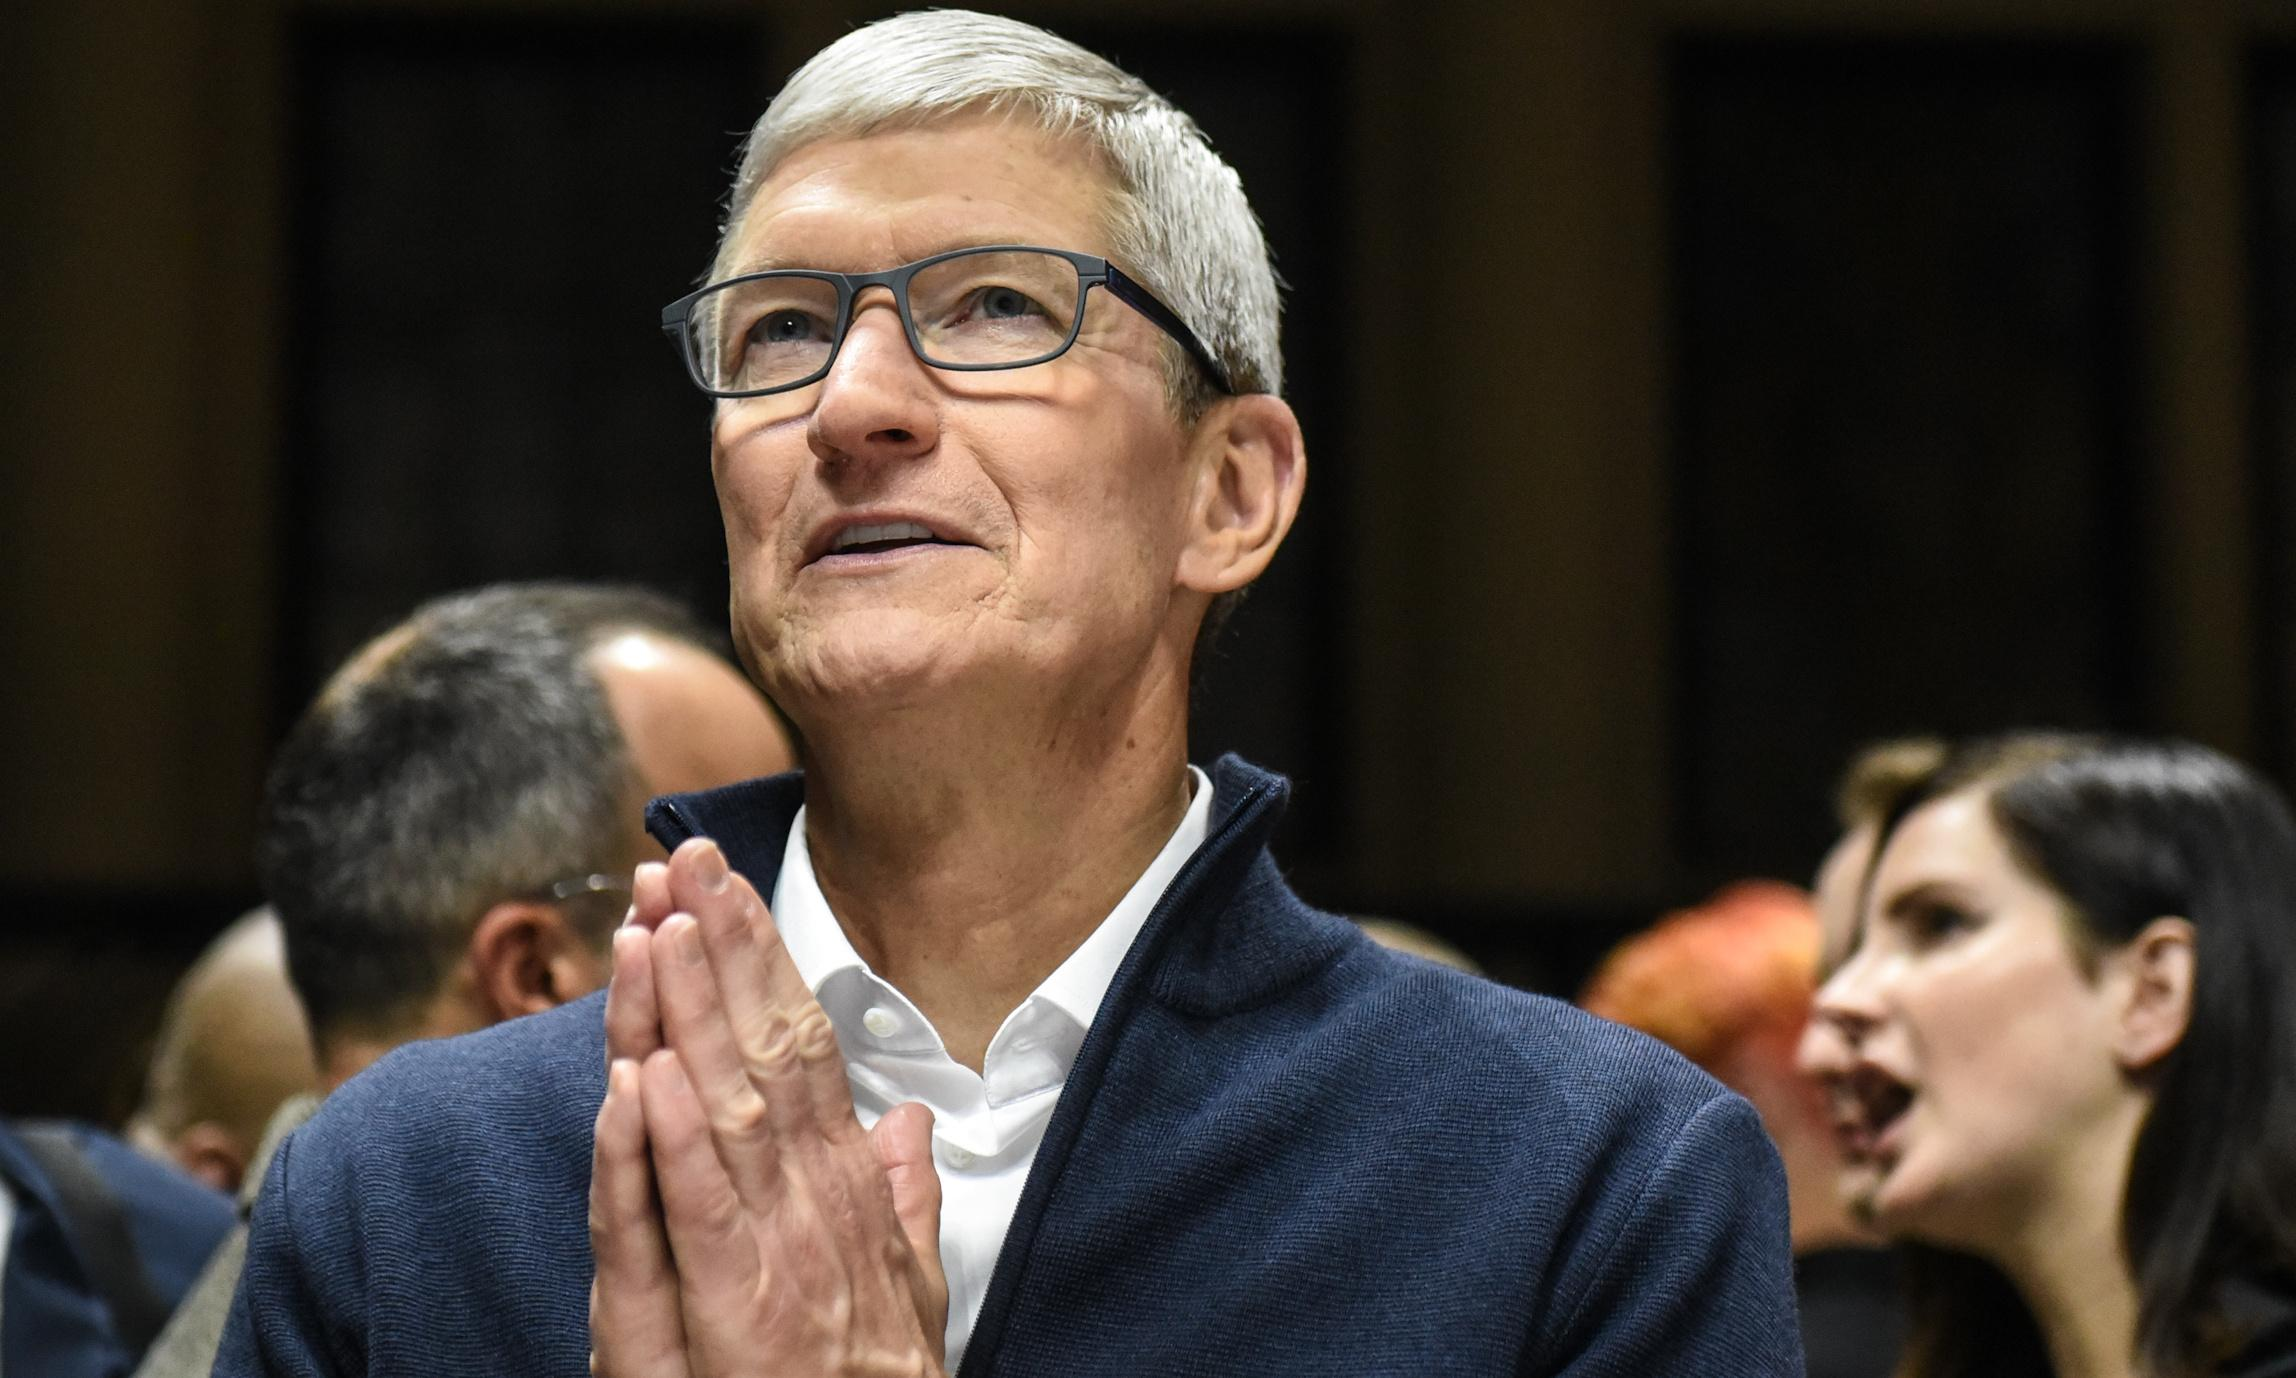 Apple chief calls for laws to tackle 'shadow economy' of data firms